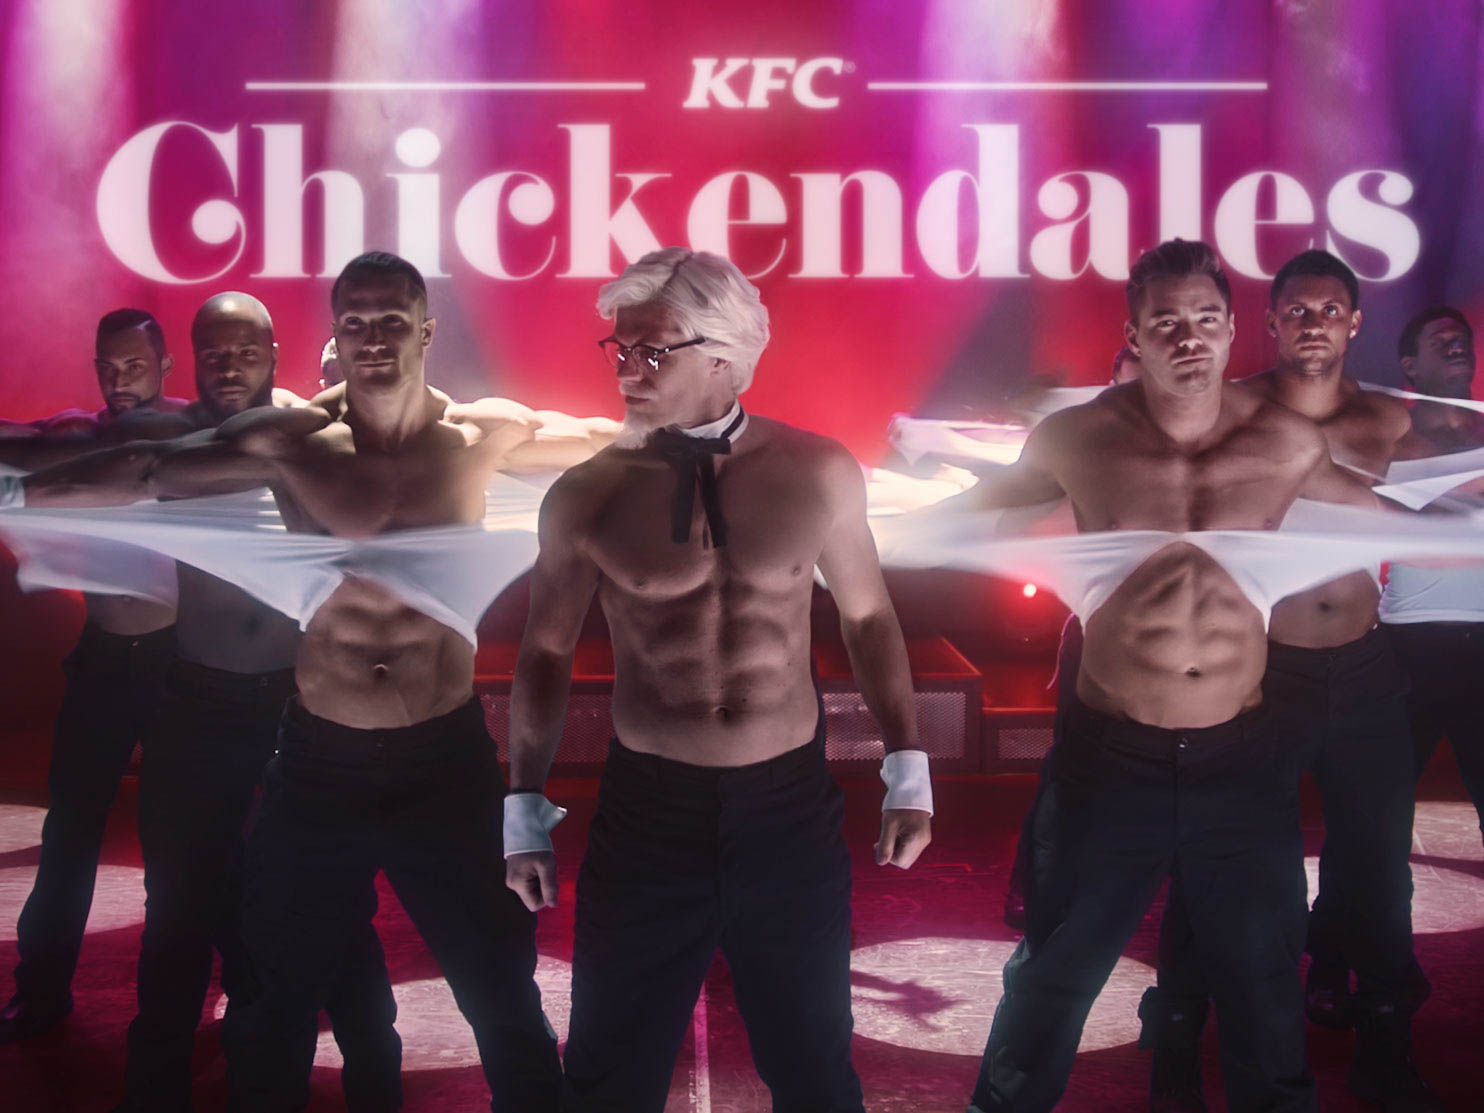 Chickendales